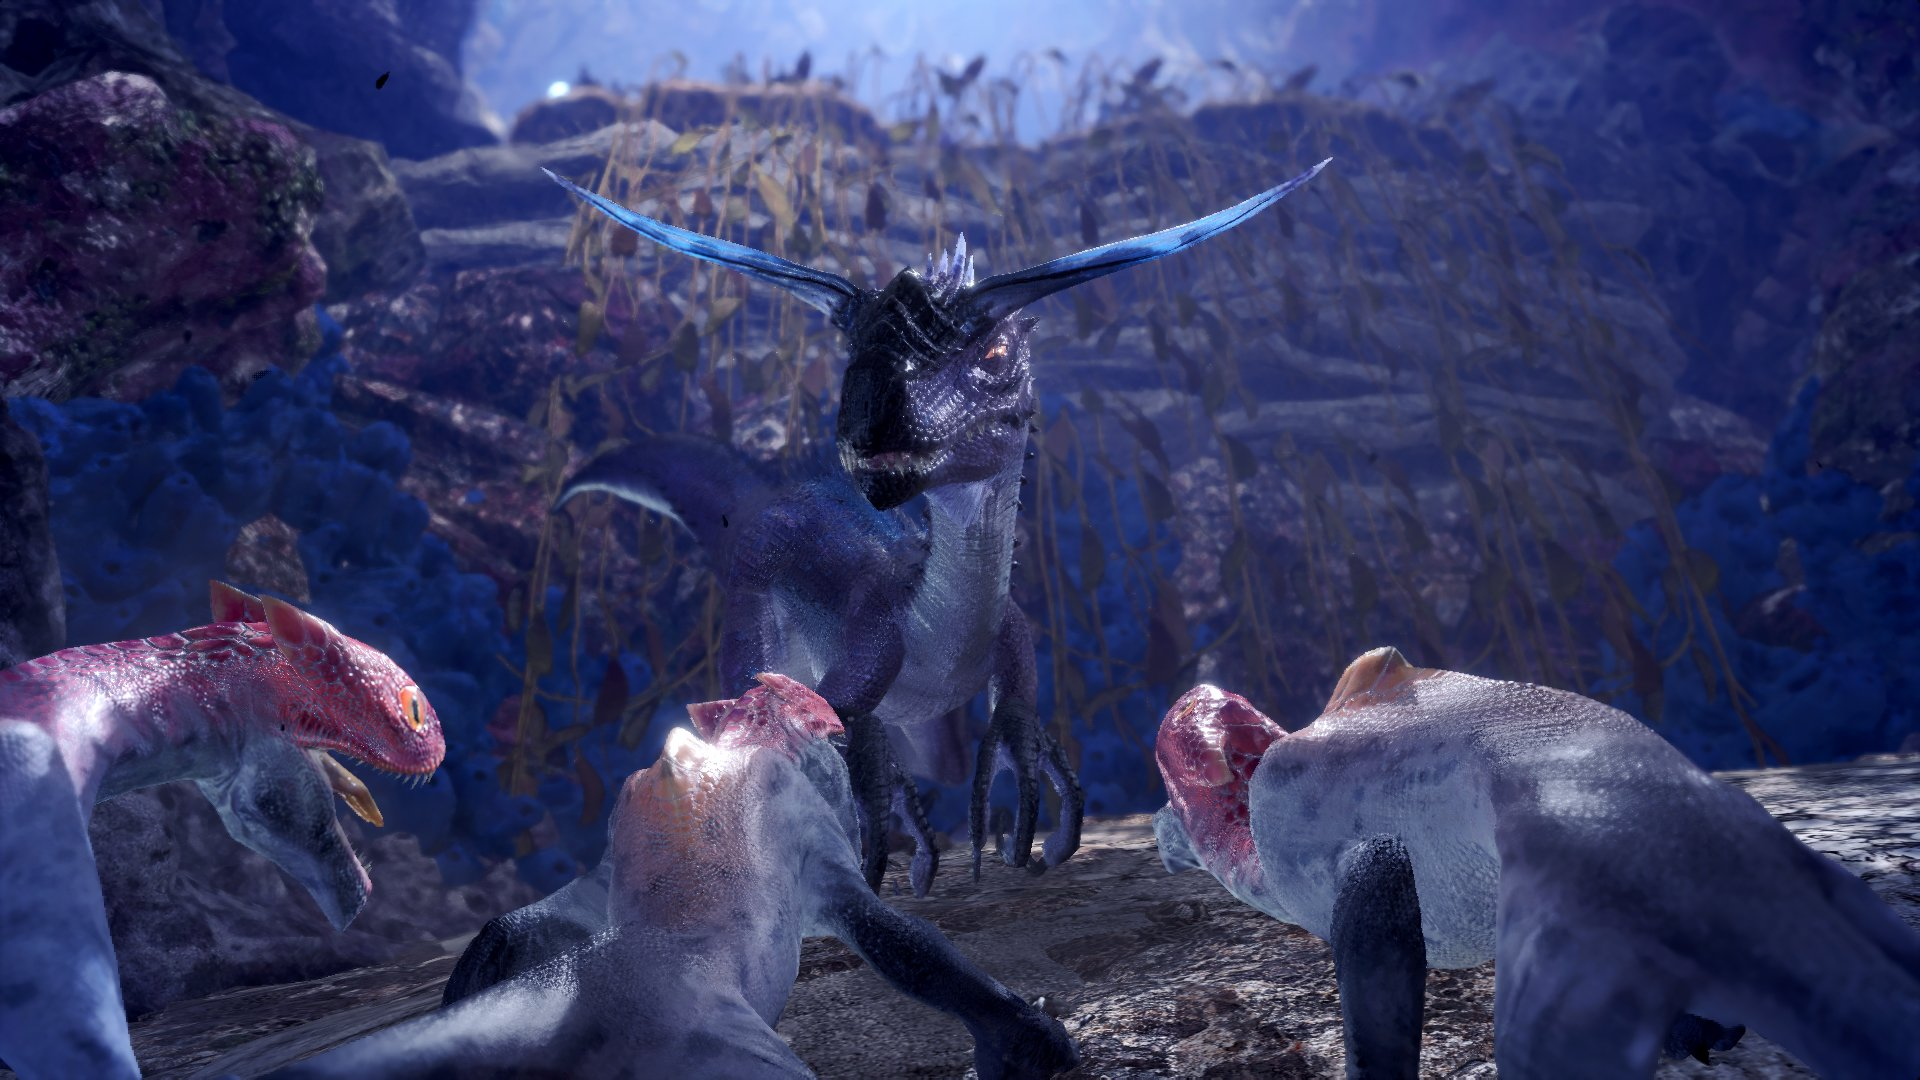 Mhw Beta Monsters >> Monster Hunter World Monster List: strengths, weaknesses, carves and rewards for all monsters in ...